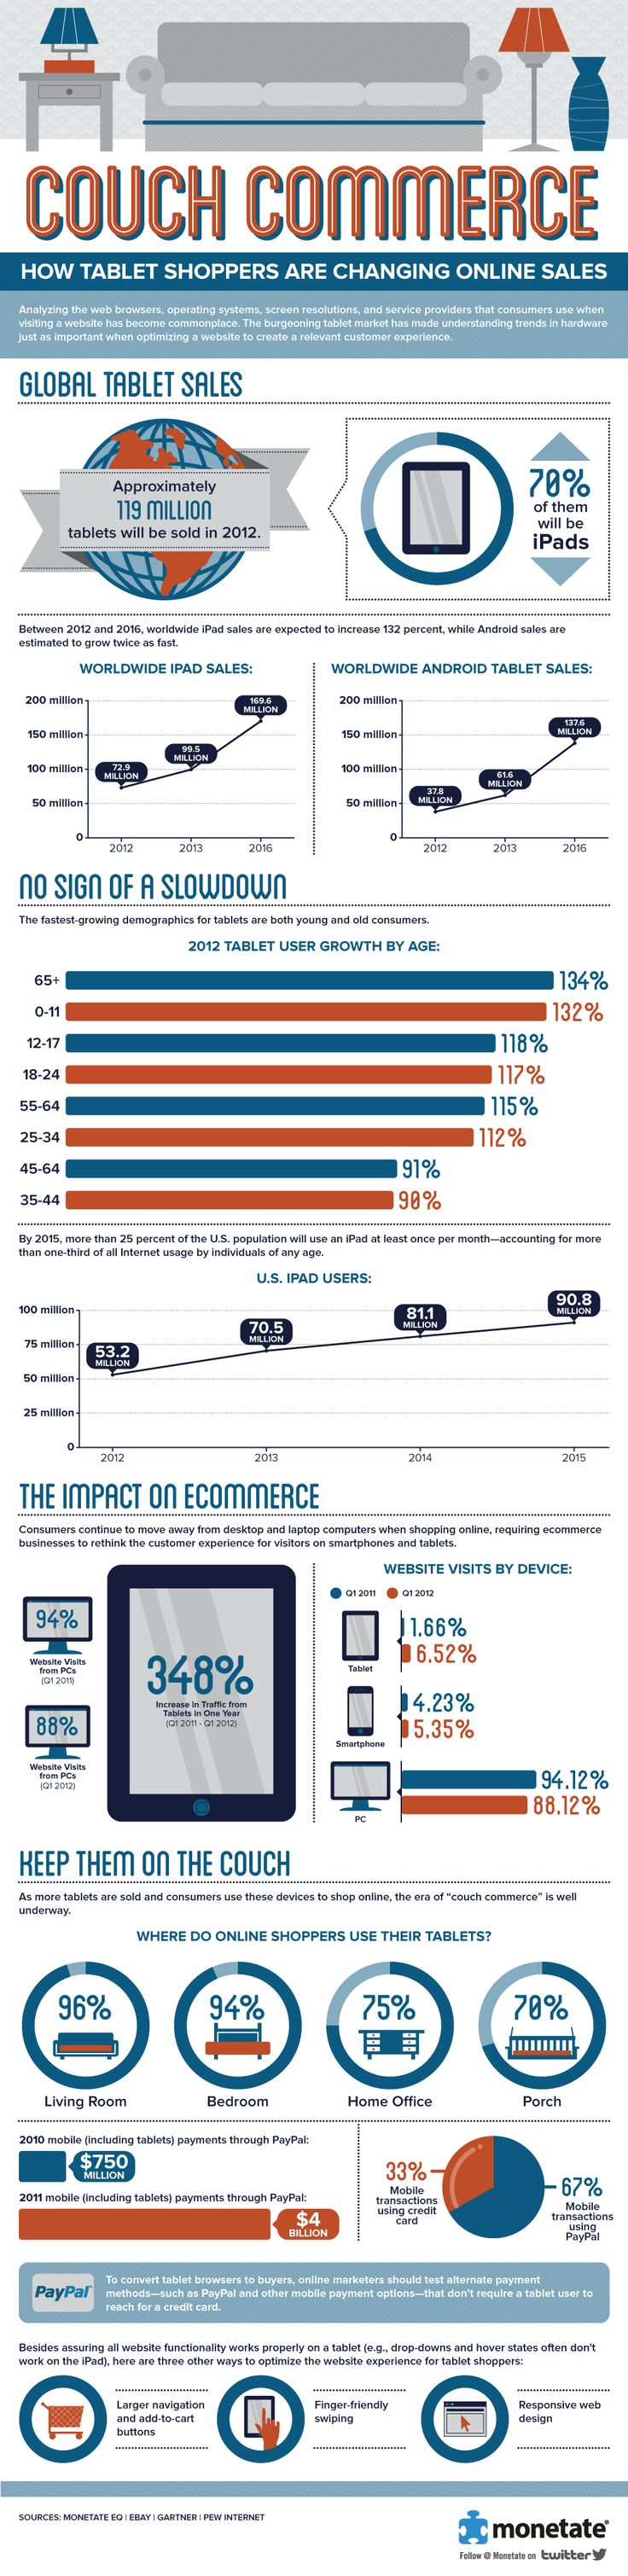 How Tablet Shoppers Are Changing eCommerce